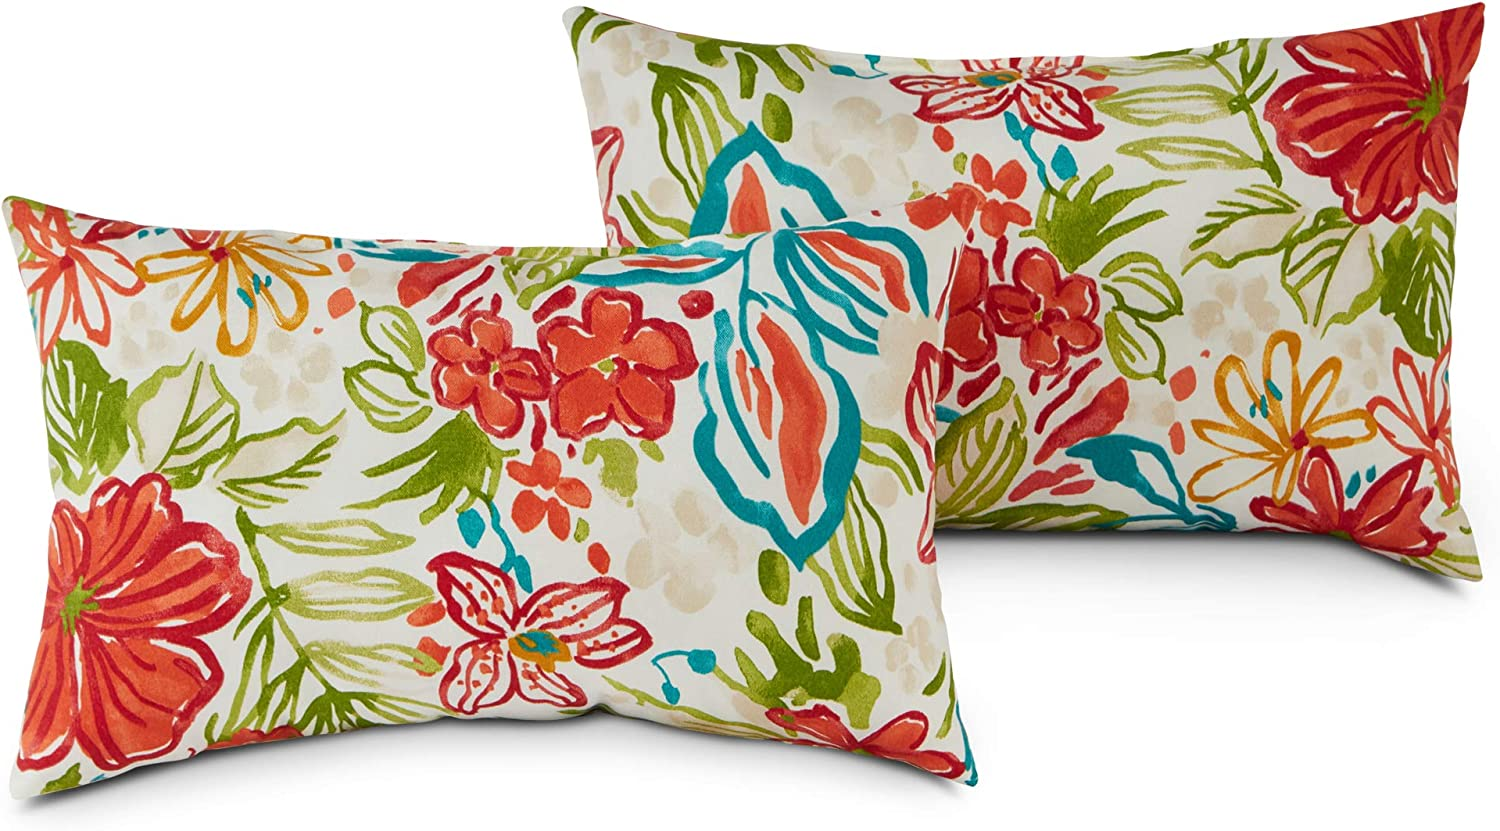 Greendale Home Fashions AZ5811S2-BREEZE Garden Floral Outdoor Rectangle Throw Pillow (Set of 2)